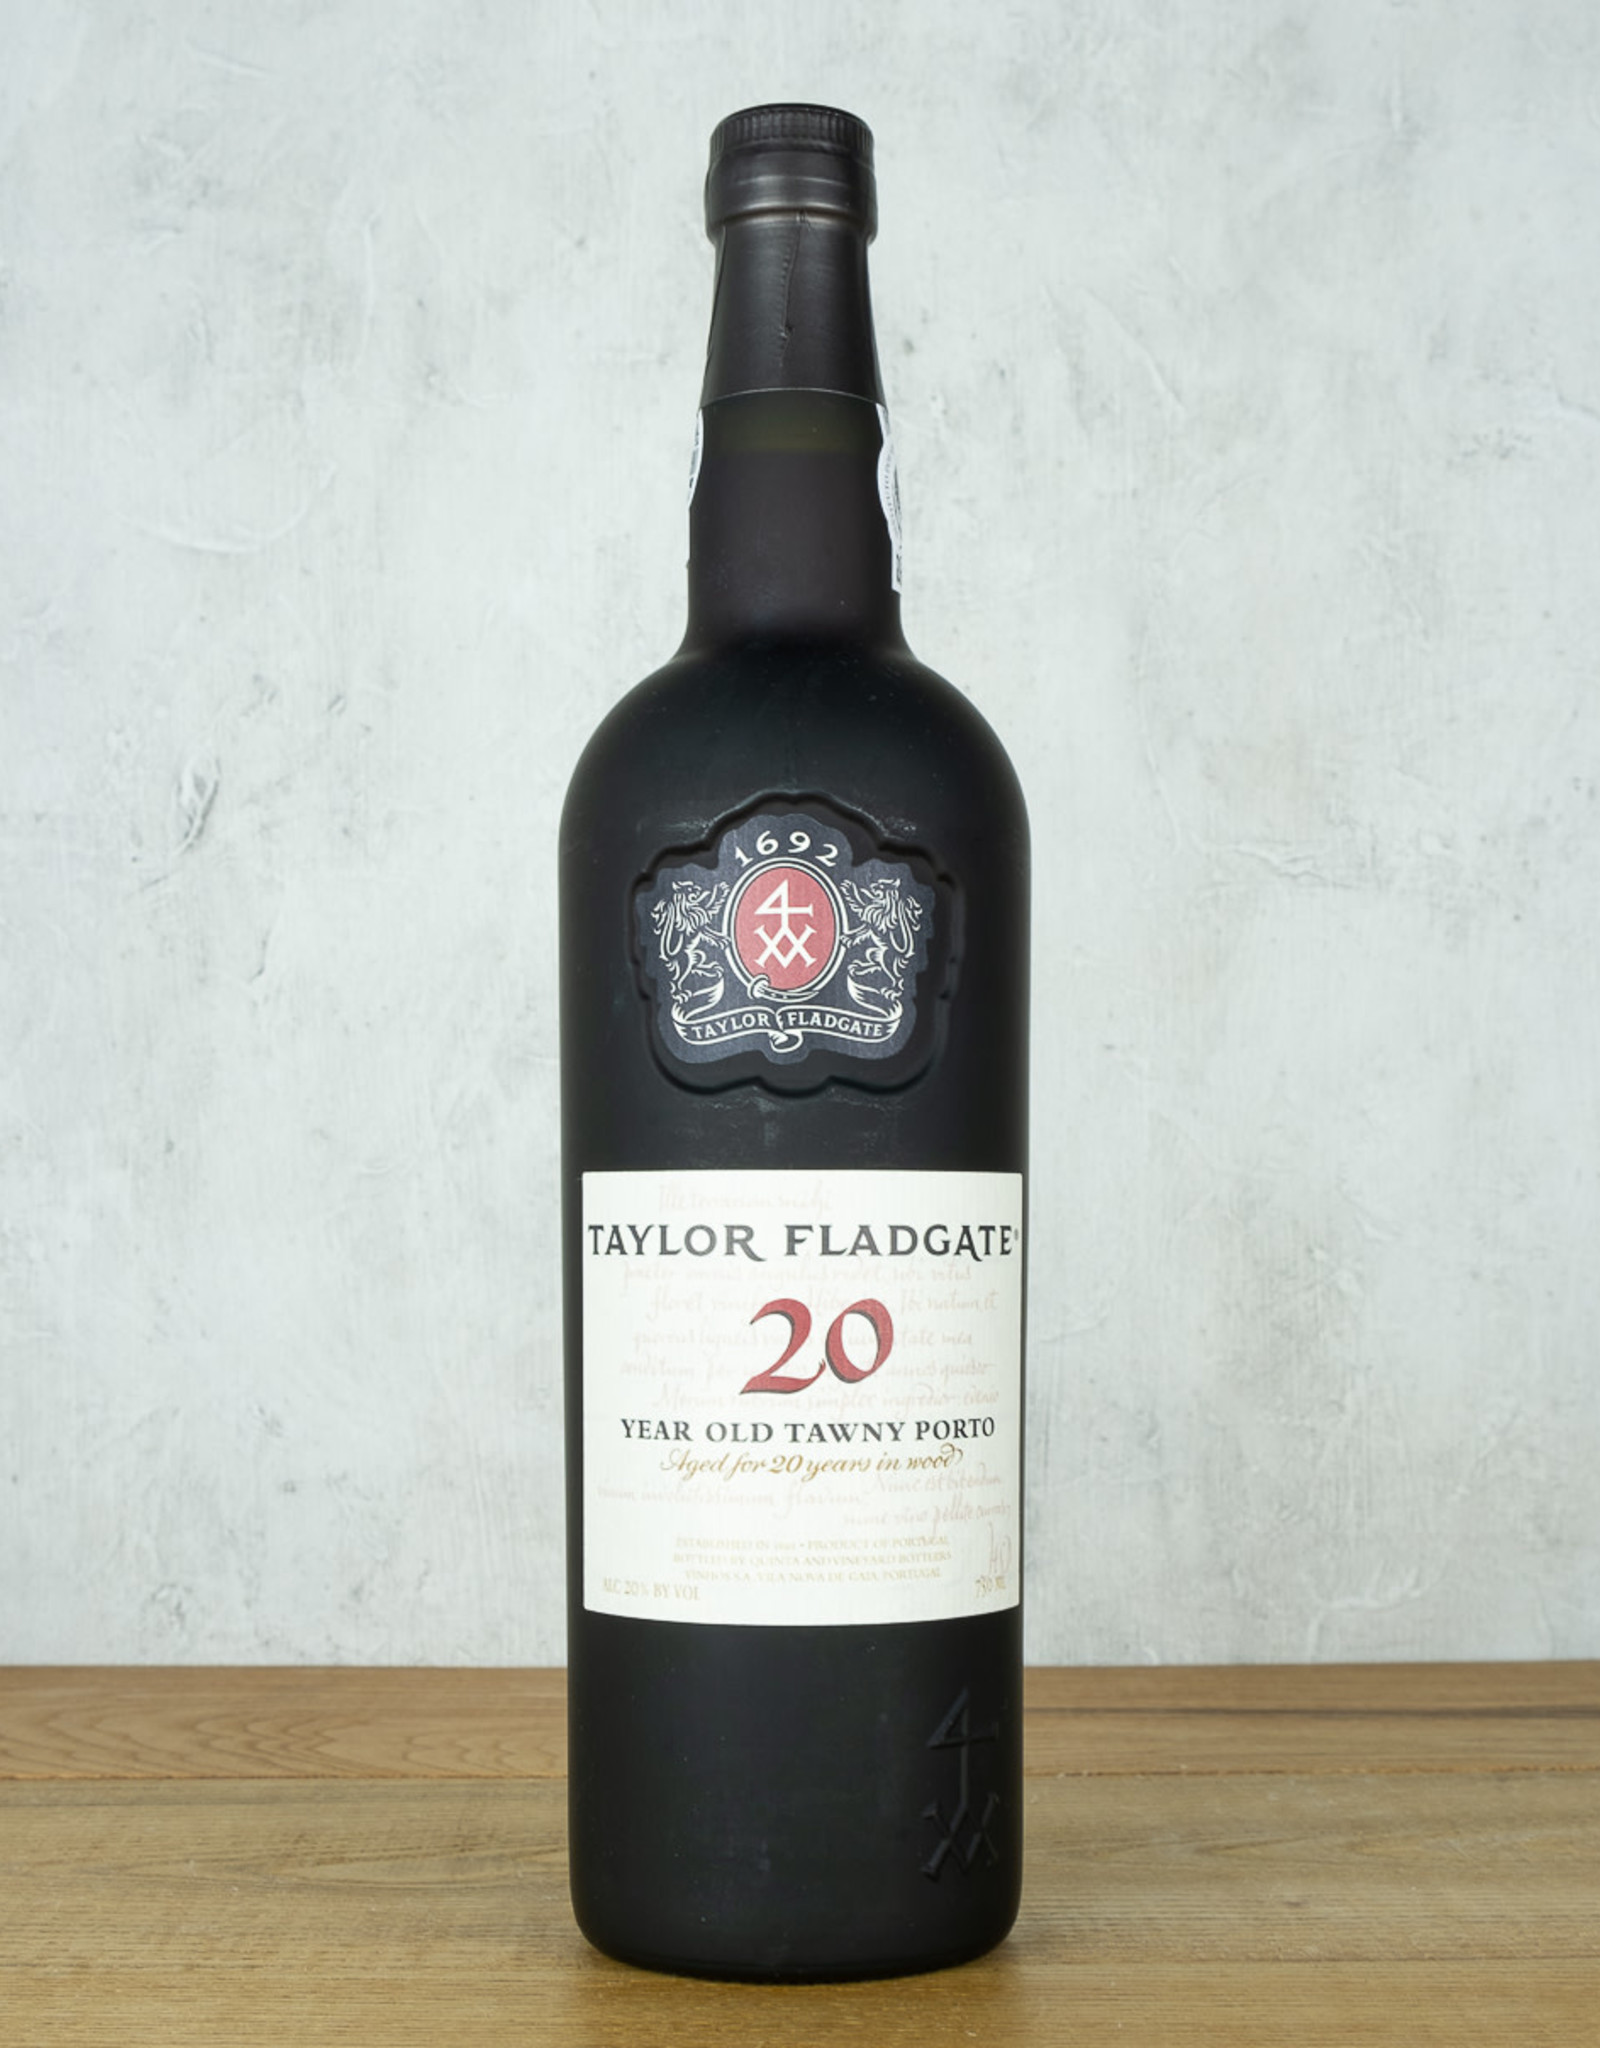 Taylor Fladgate 20 Year Old Tawny